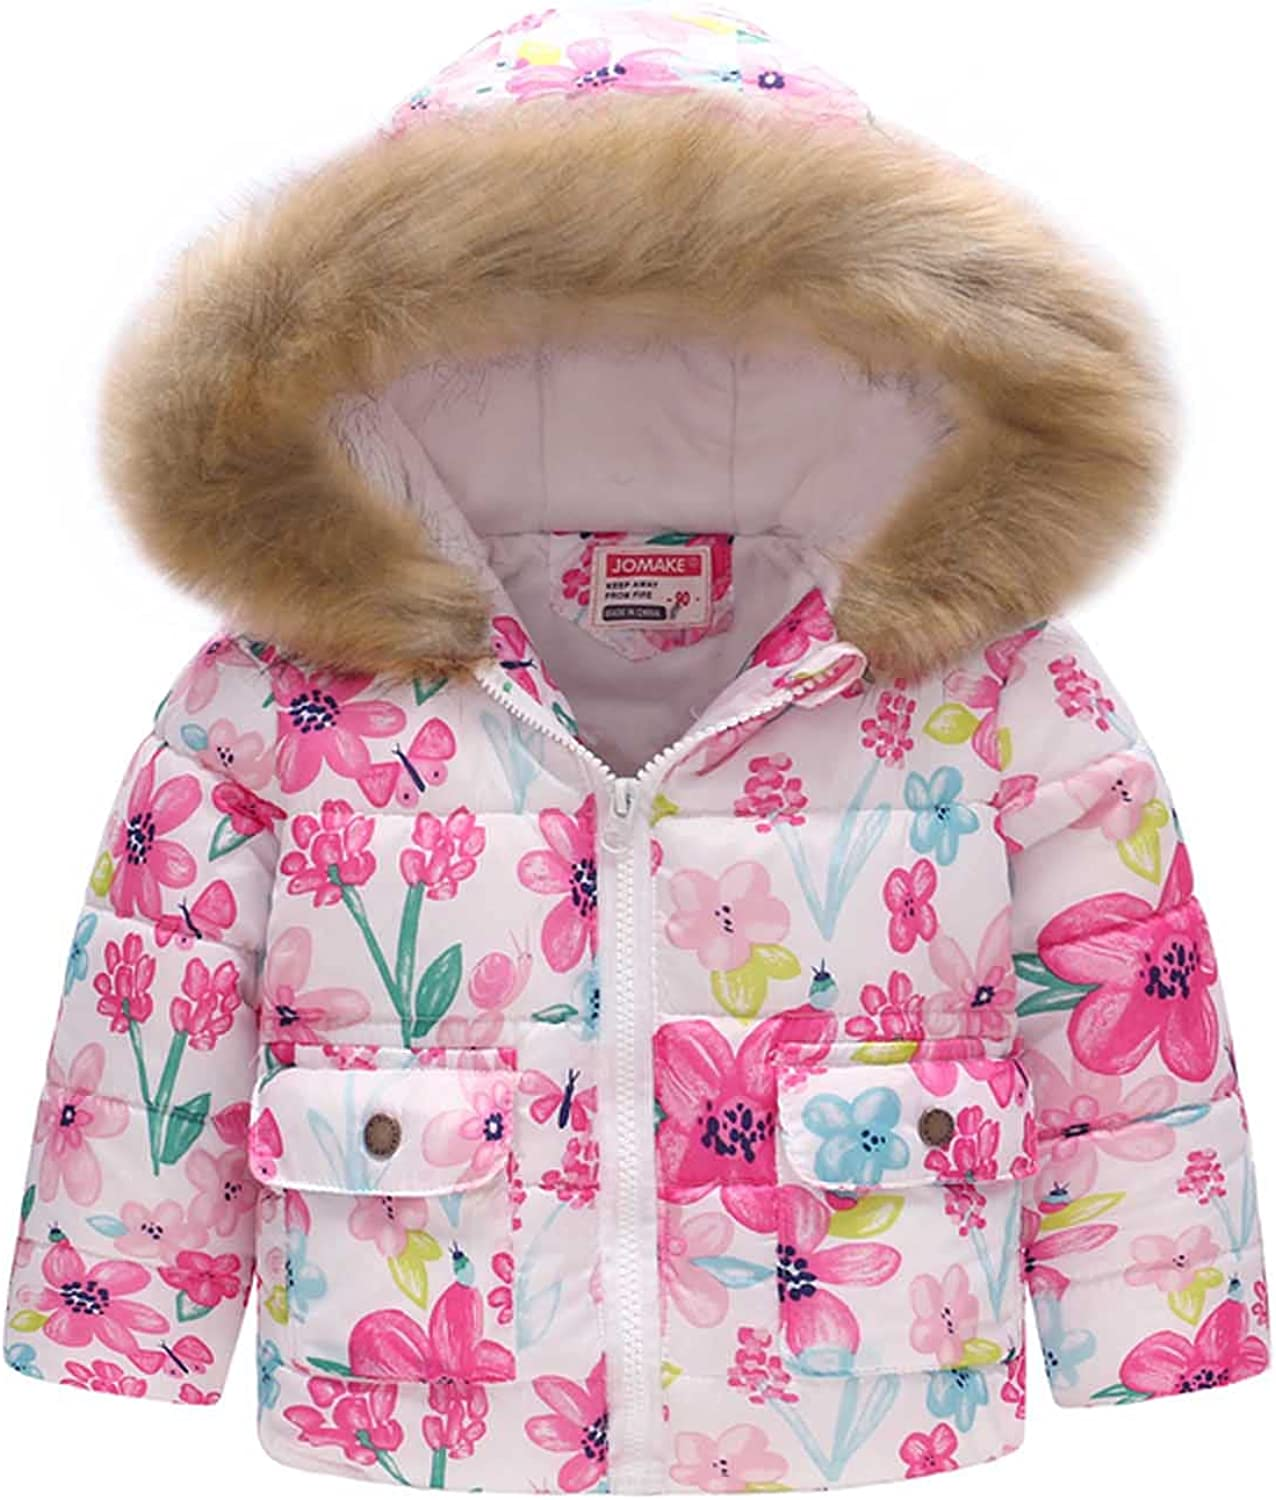 Baby Coat Girls Selling Thick Tulsa Mall Padded Jacket Jac Clothes Down Winter